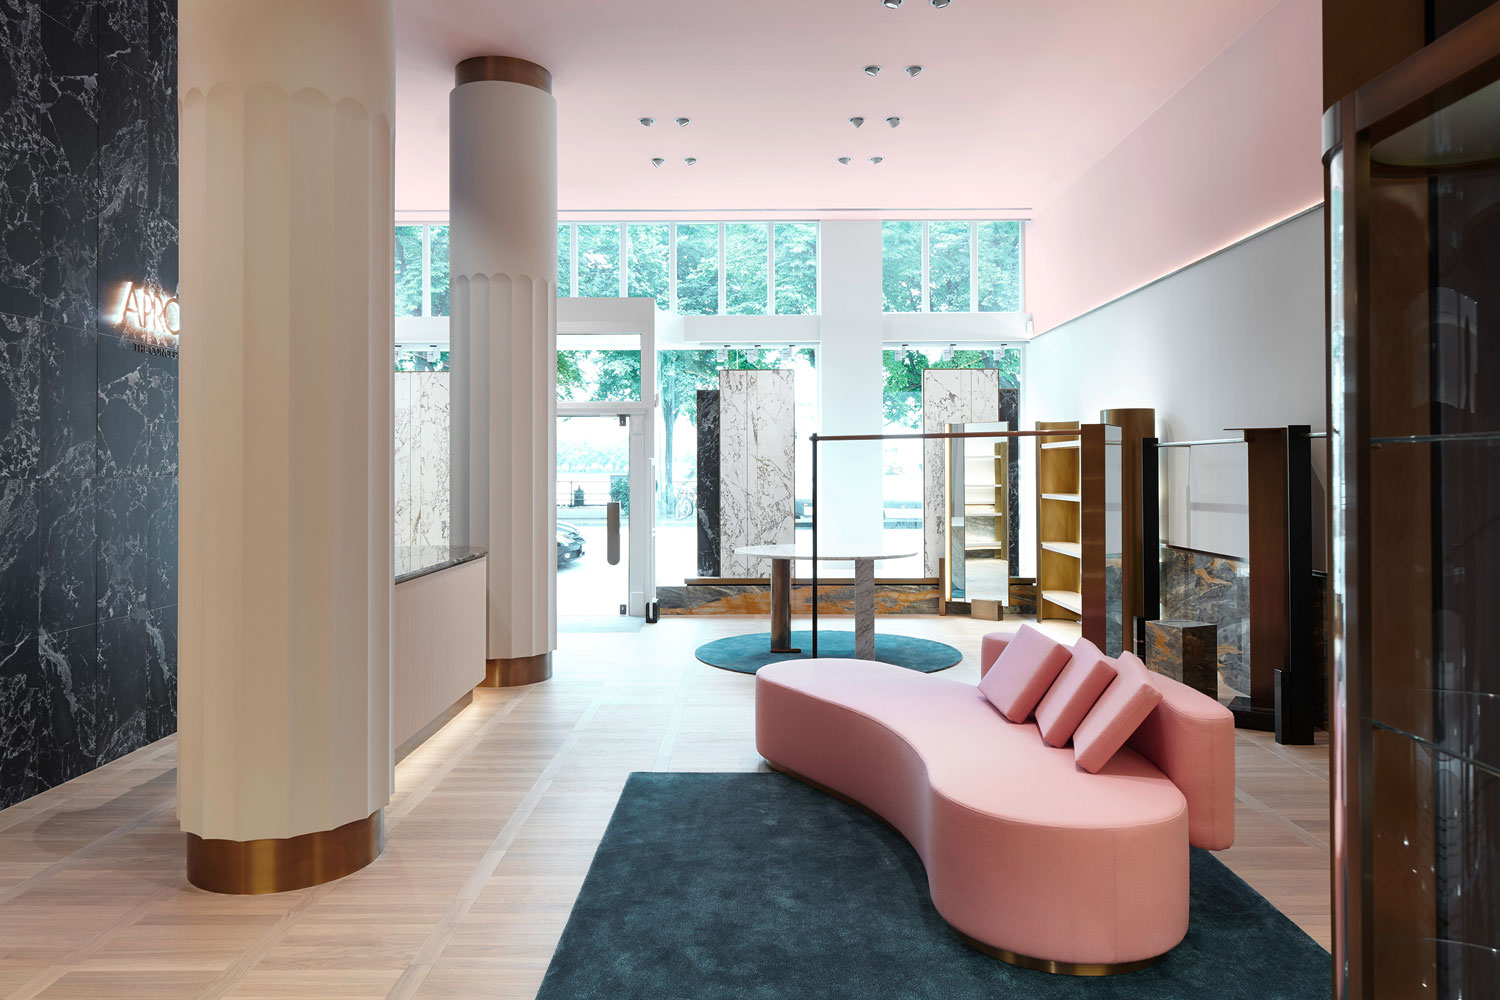 Apropos Concept Store in Hamburg by Rodolphe Parente.